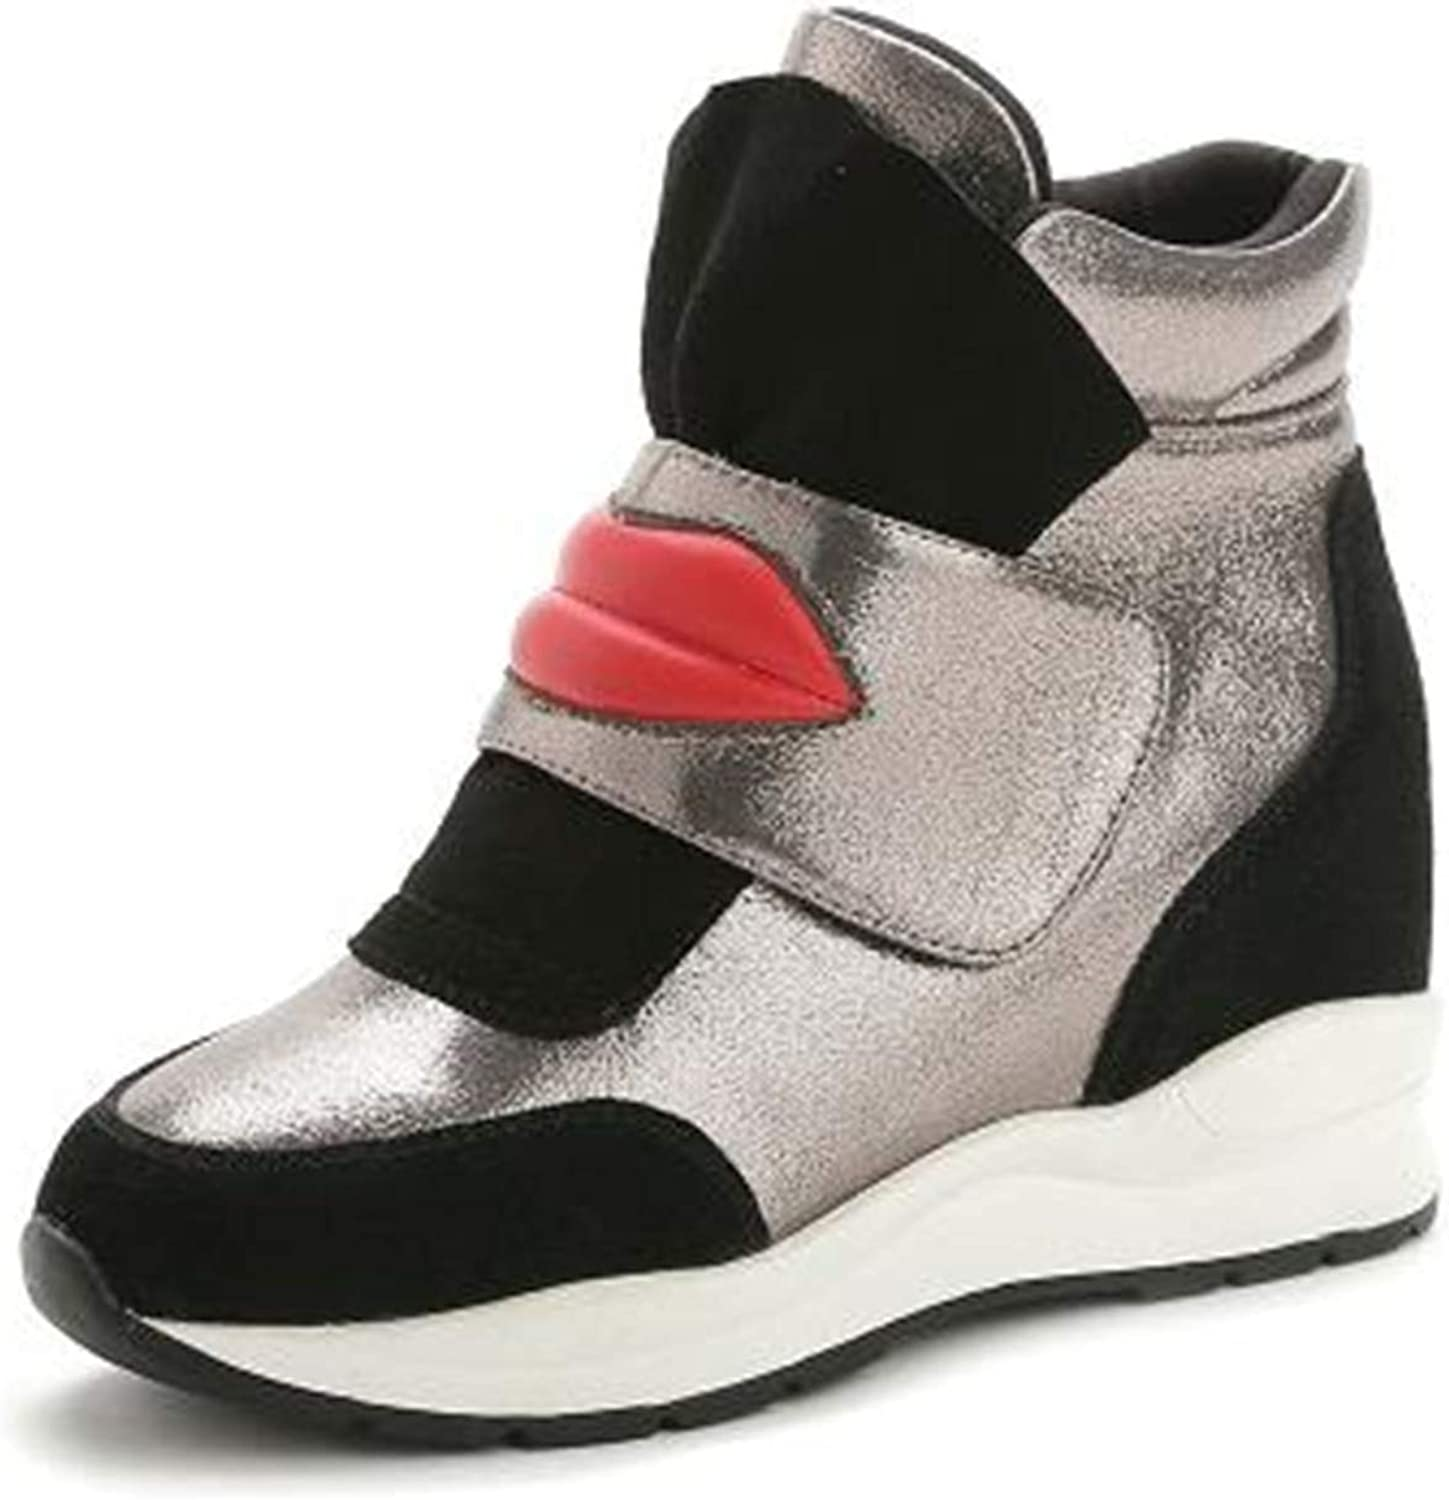 Kongsta and Winter Boots Increased Within High-Top shoes Version of The Big Lips Invisiblewomen Boots